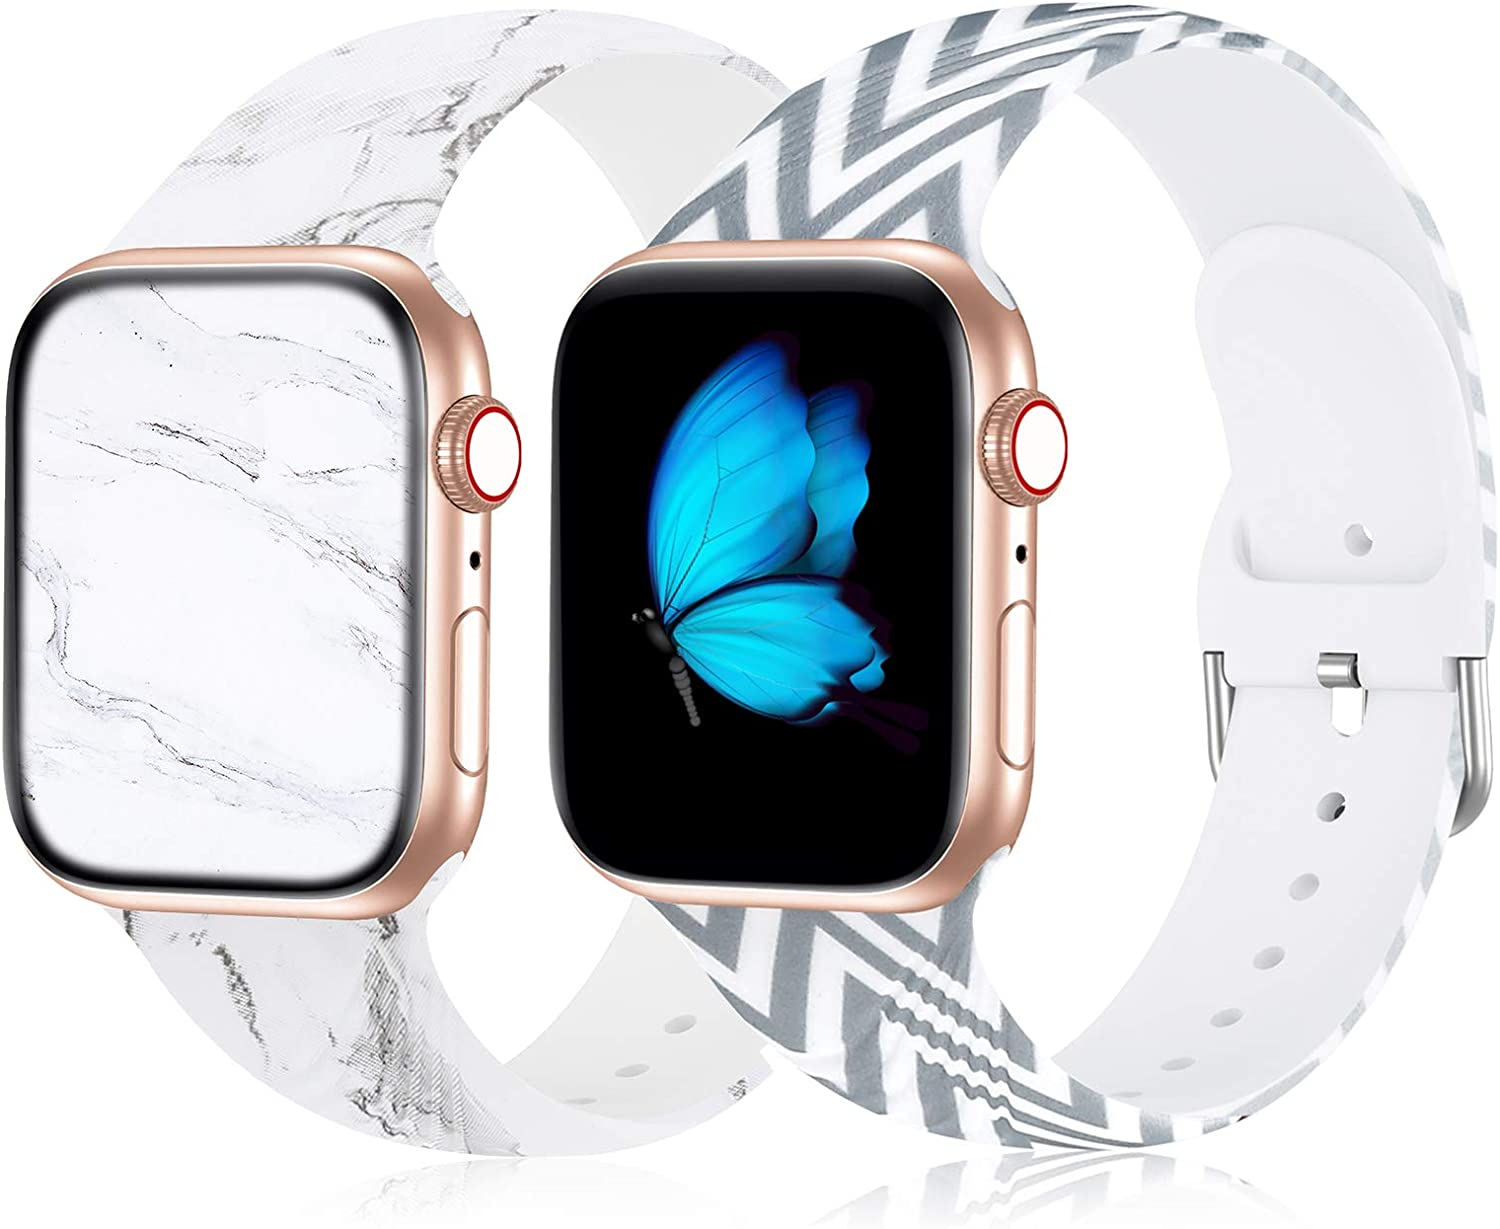 Floral Bands Compatible with Apple Watch Bands 38mm 40mm 42mm 44mm for Women, Soft Comfy Silicone Sports Band Marble Pattern Replacement Wristbands Strap for iWatch SE Series 6 5 4 3 2 1, 2 Pack